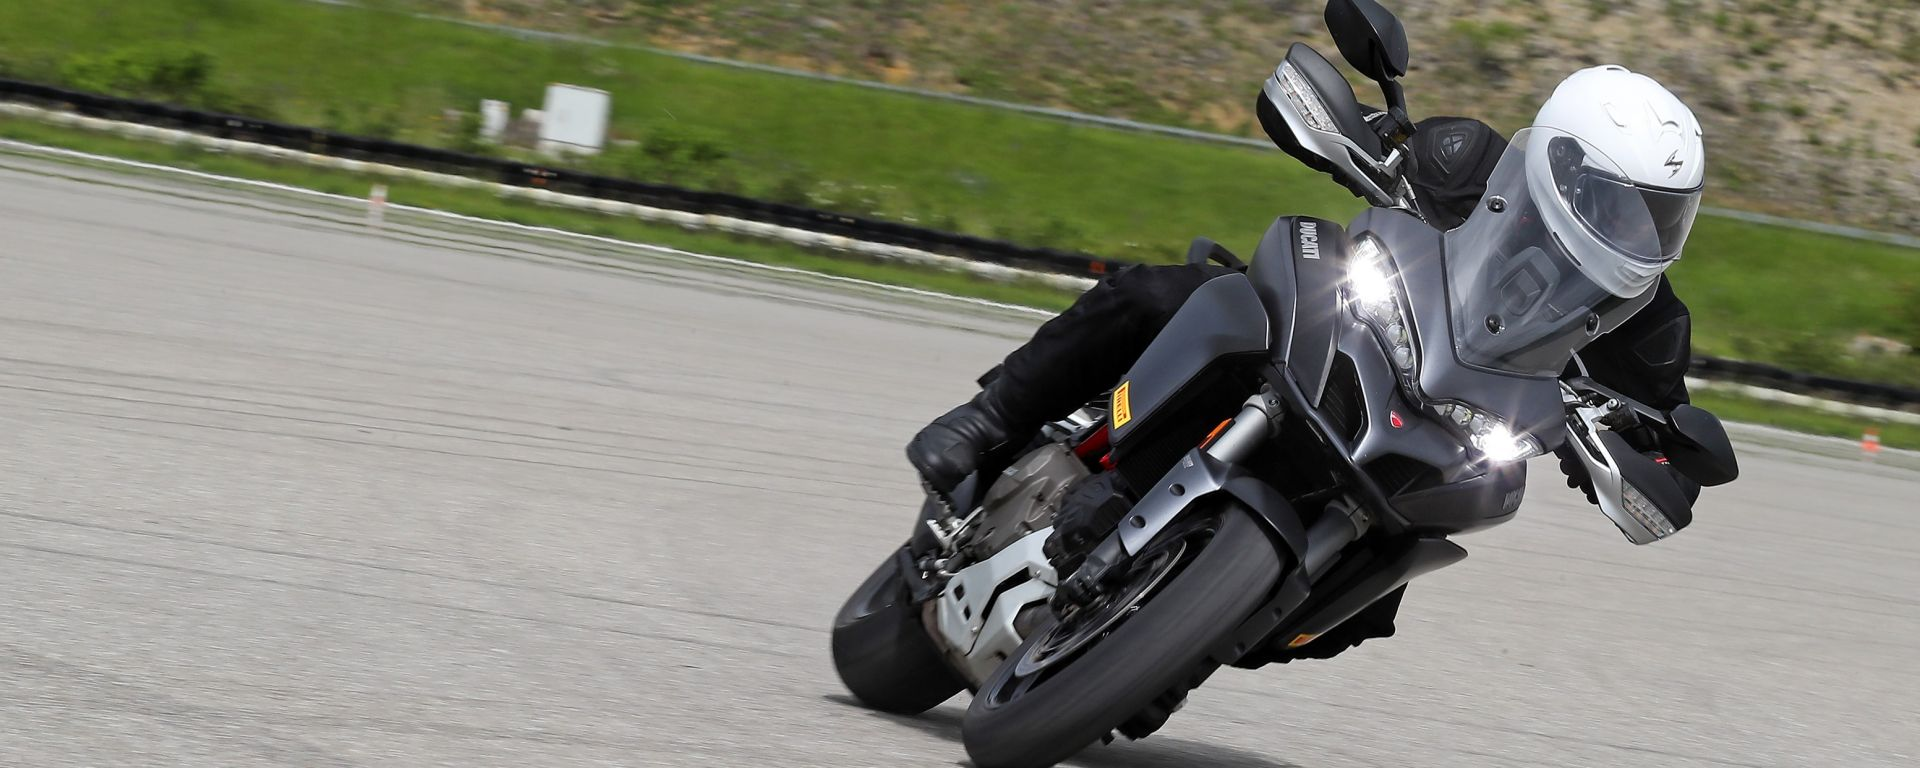 Ducati Multistrada 1200 S, test Motorcycle Stability Control Bosch